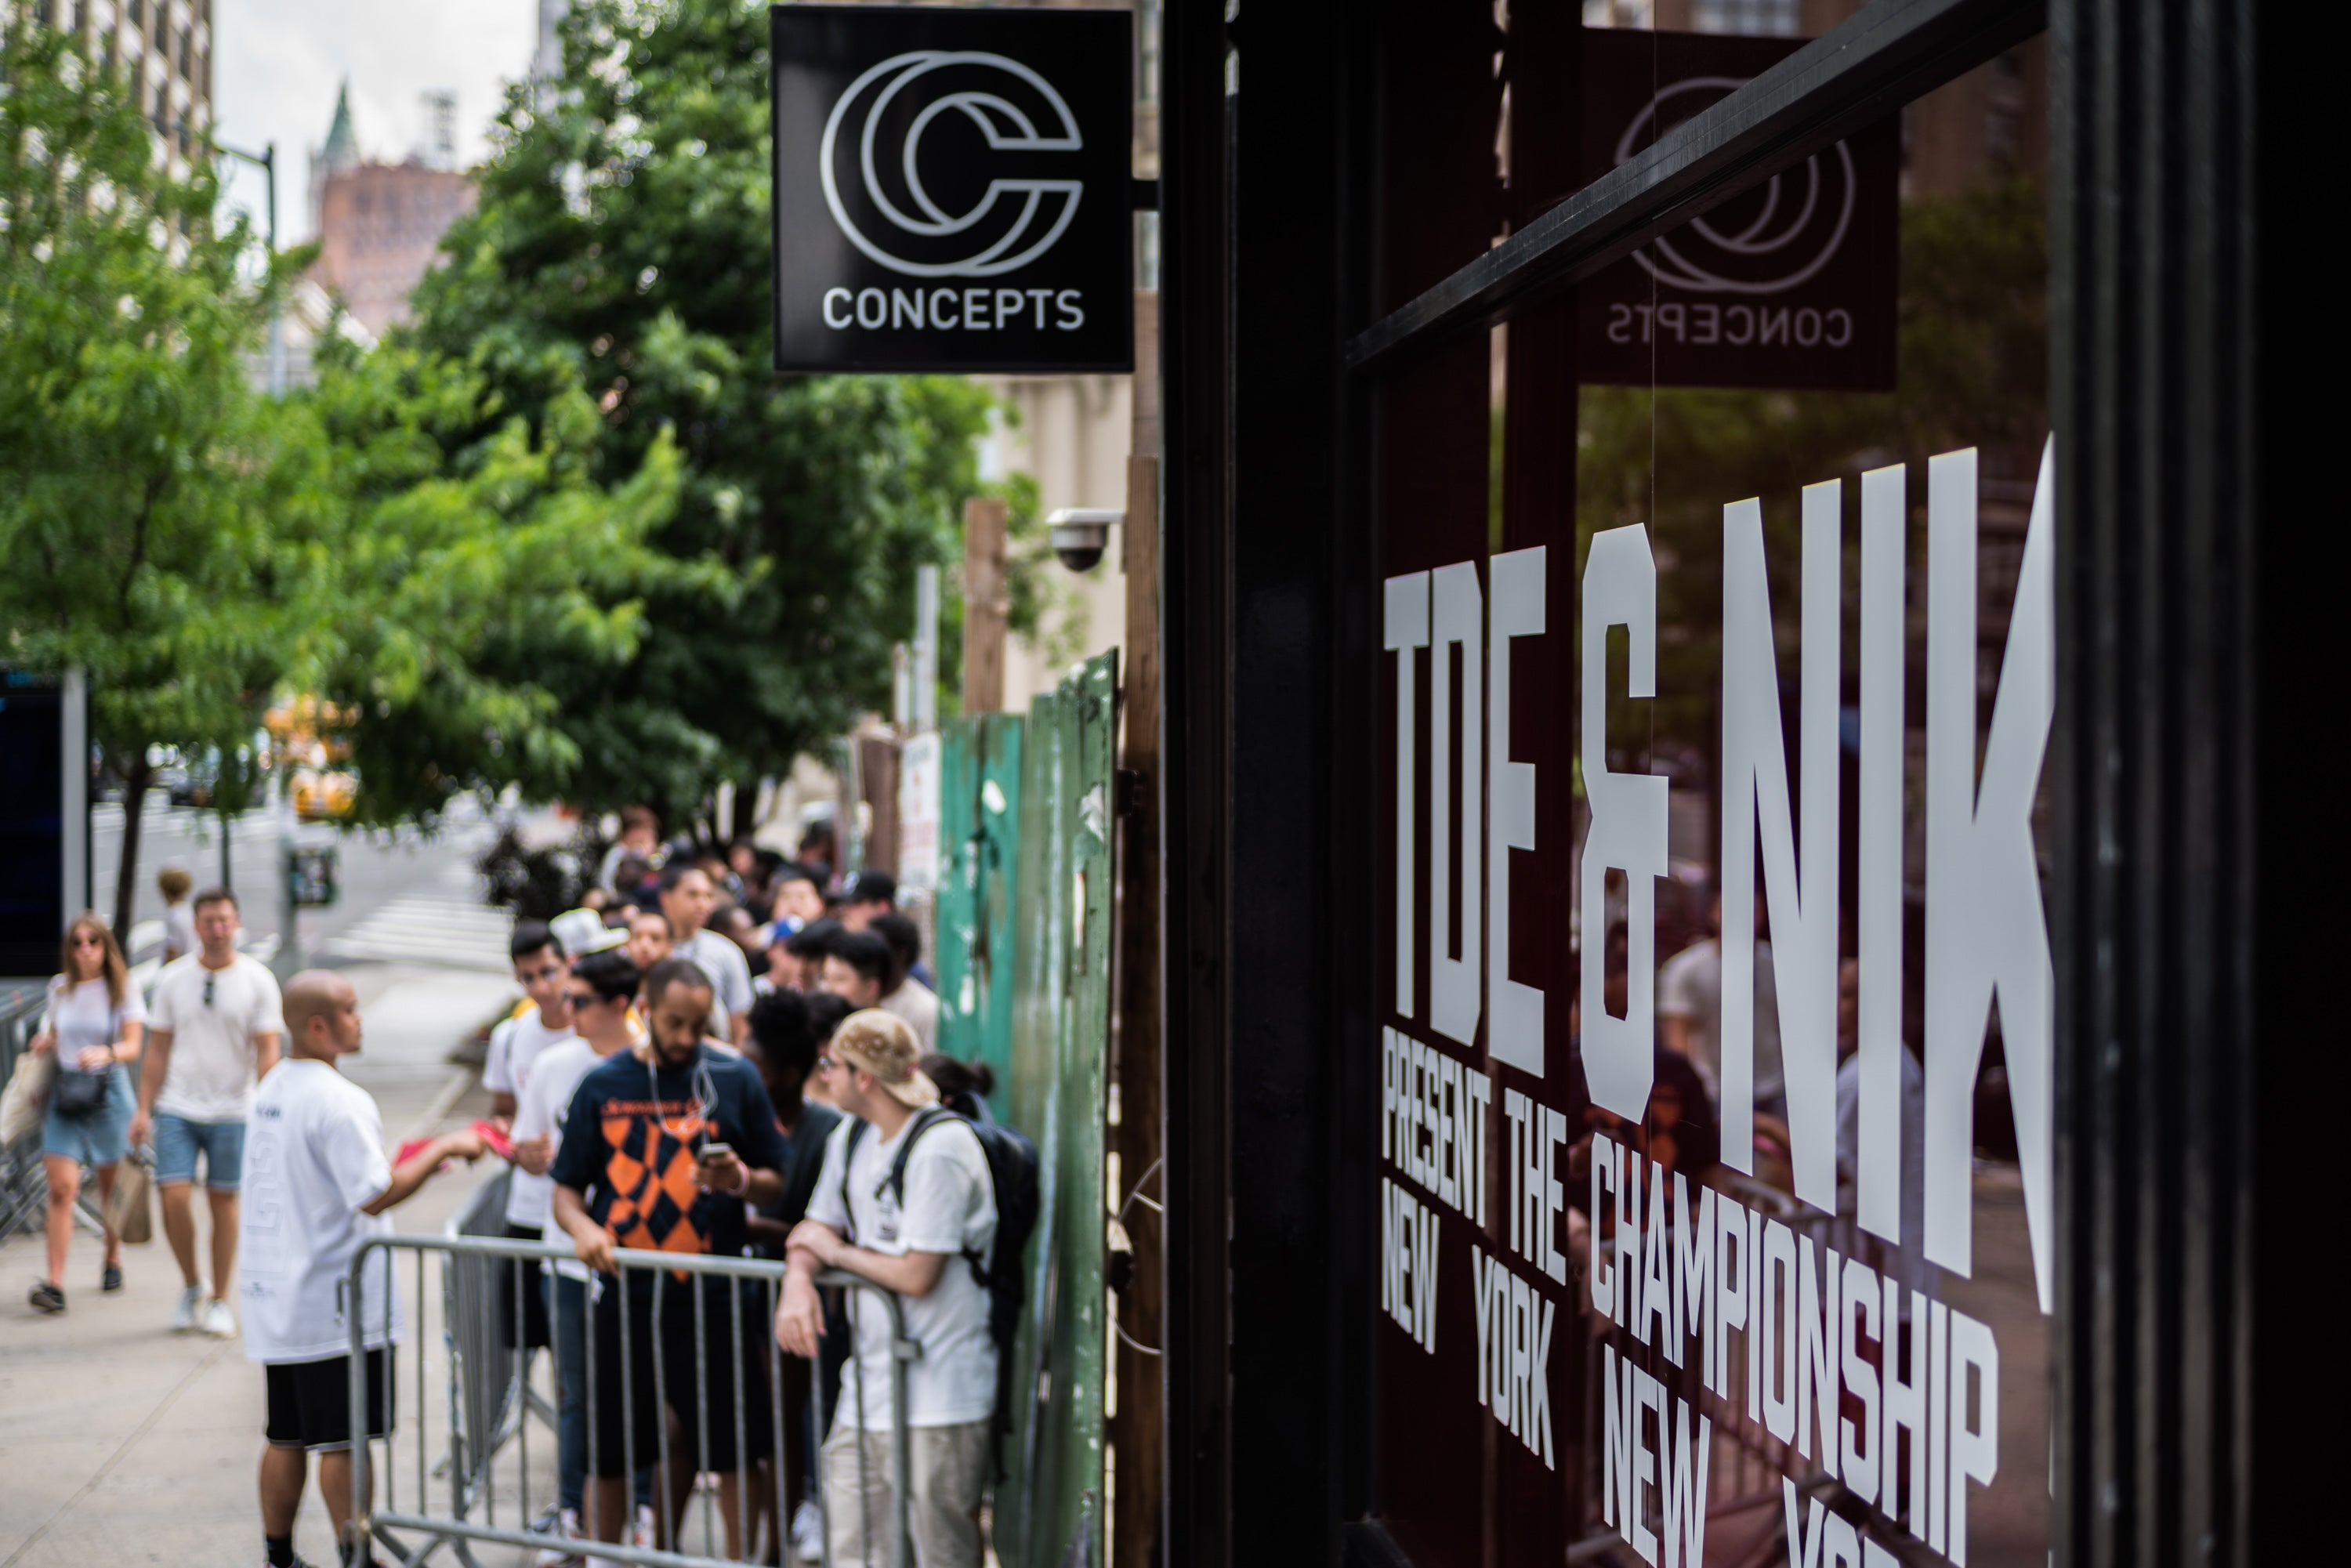 Nike x TDE Championship Tour Pop-up Shop hosted by Concepts